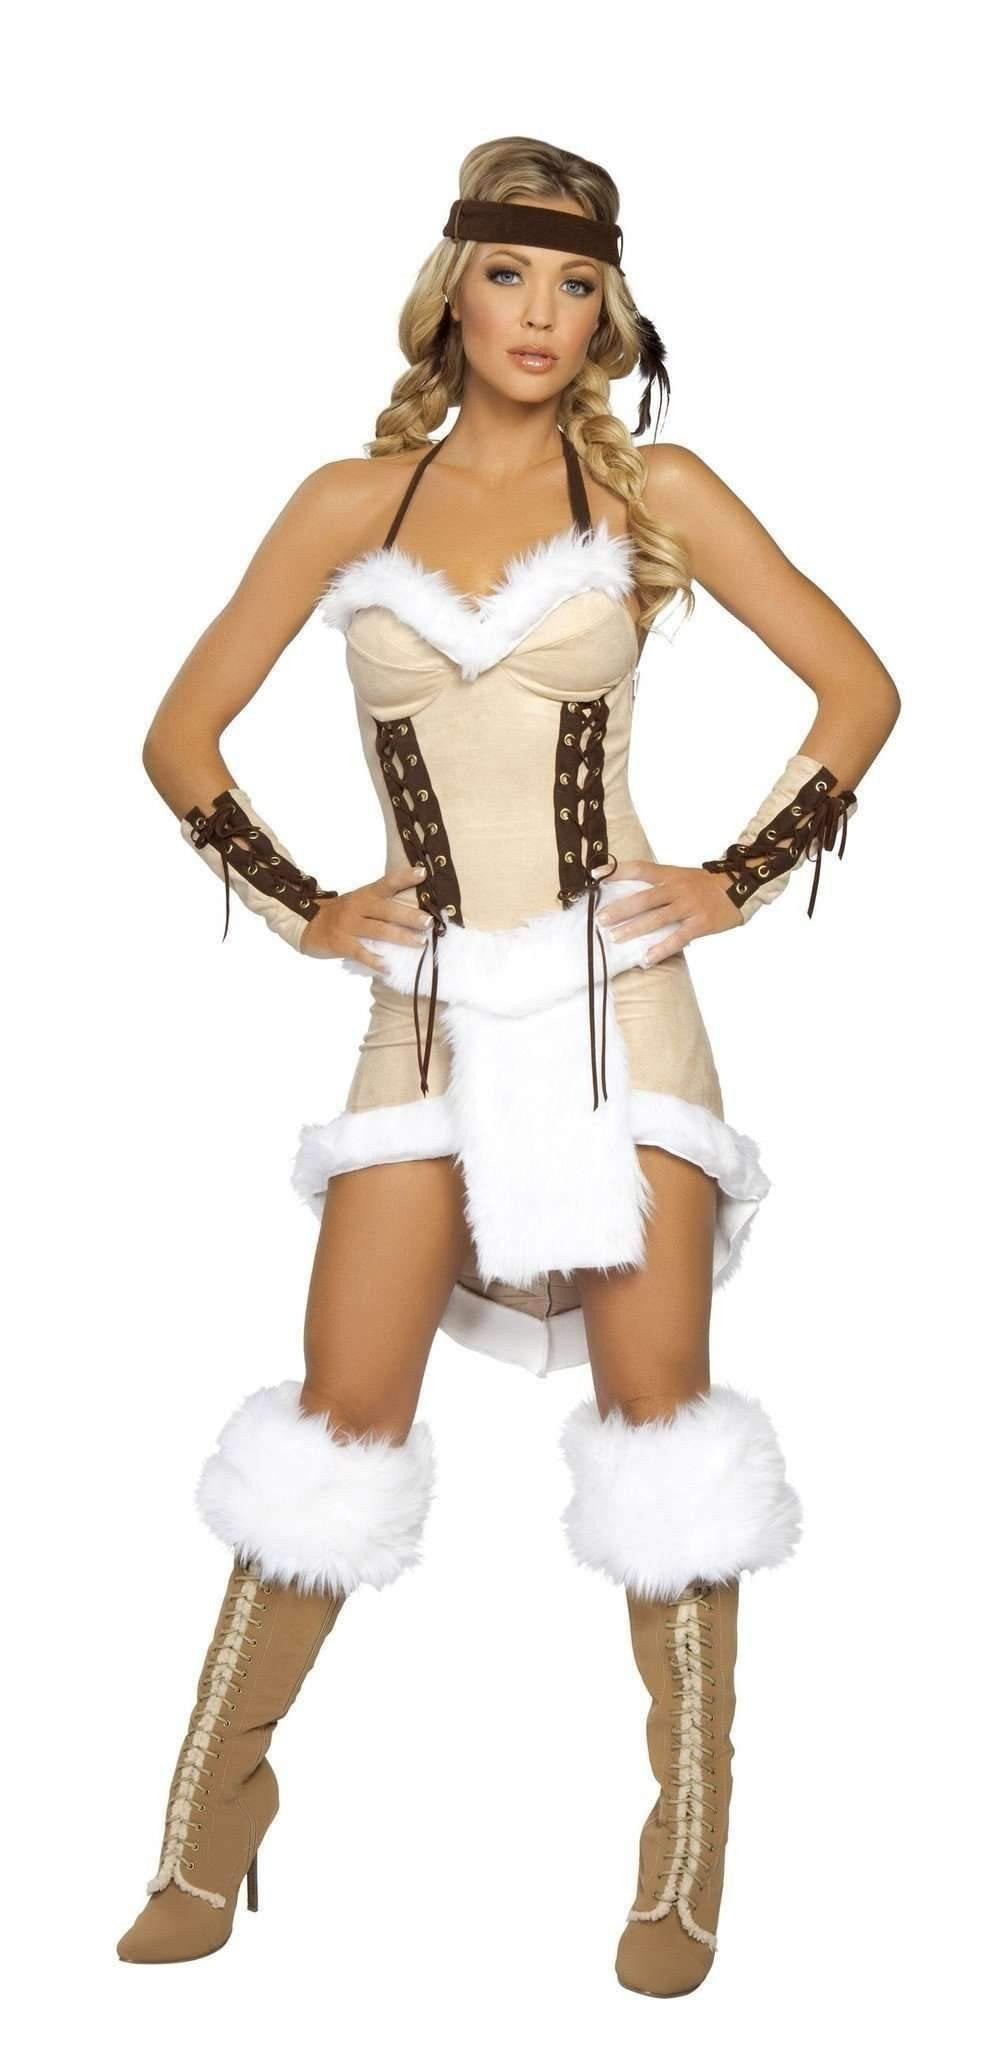 Roma Costume 4207 3pc Indian Maiden-Costumes-Roma-S/M-White-Unspoken Fashion